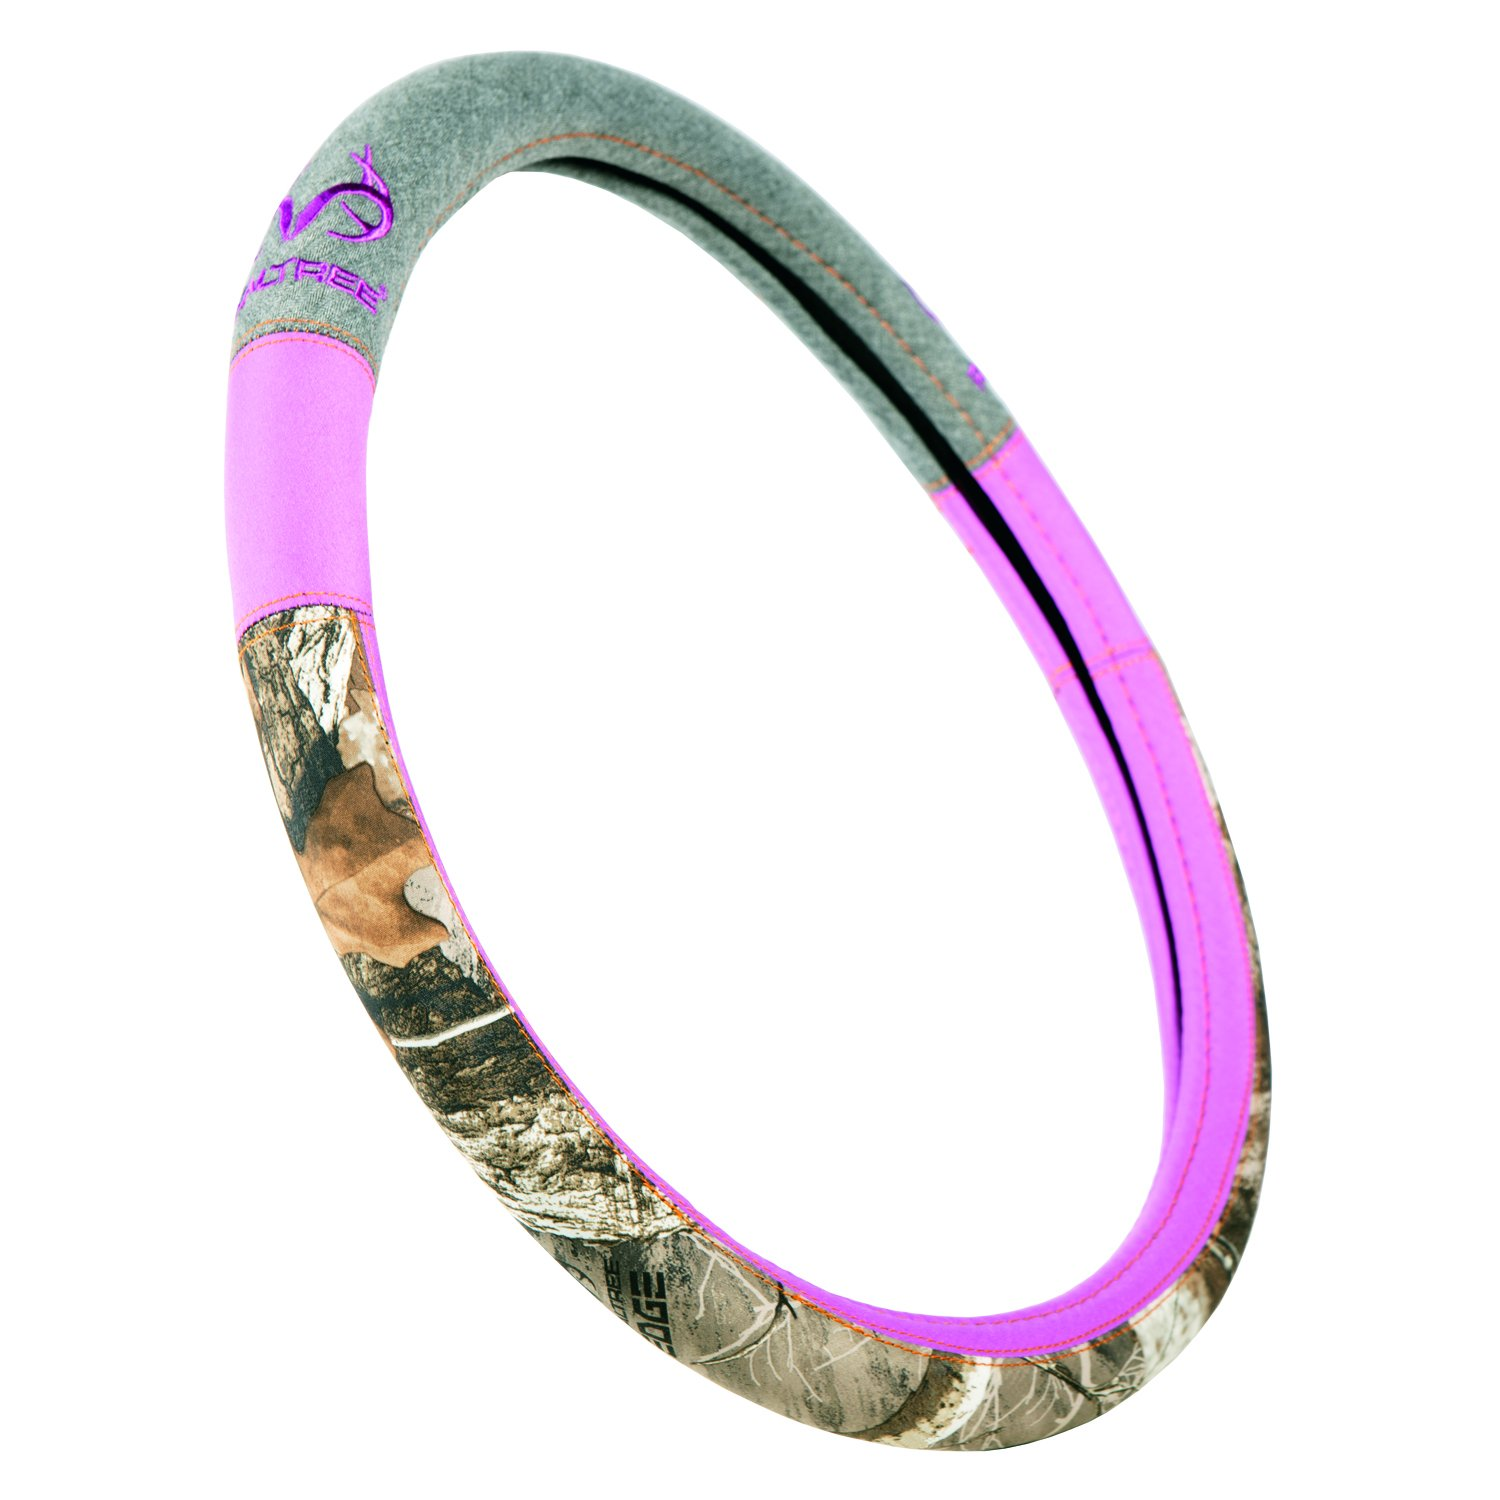 One Size Fits Most Realtree Steering Wheel Cover Includes 1 Camo Steering Wheel Cover Edge//Black Patriotic